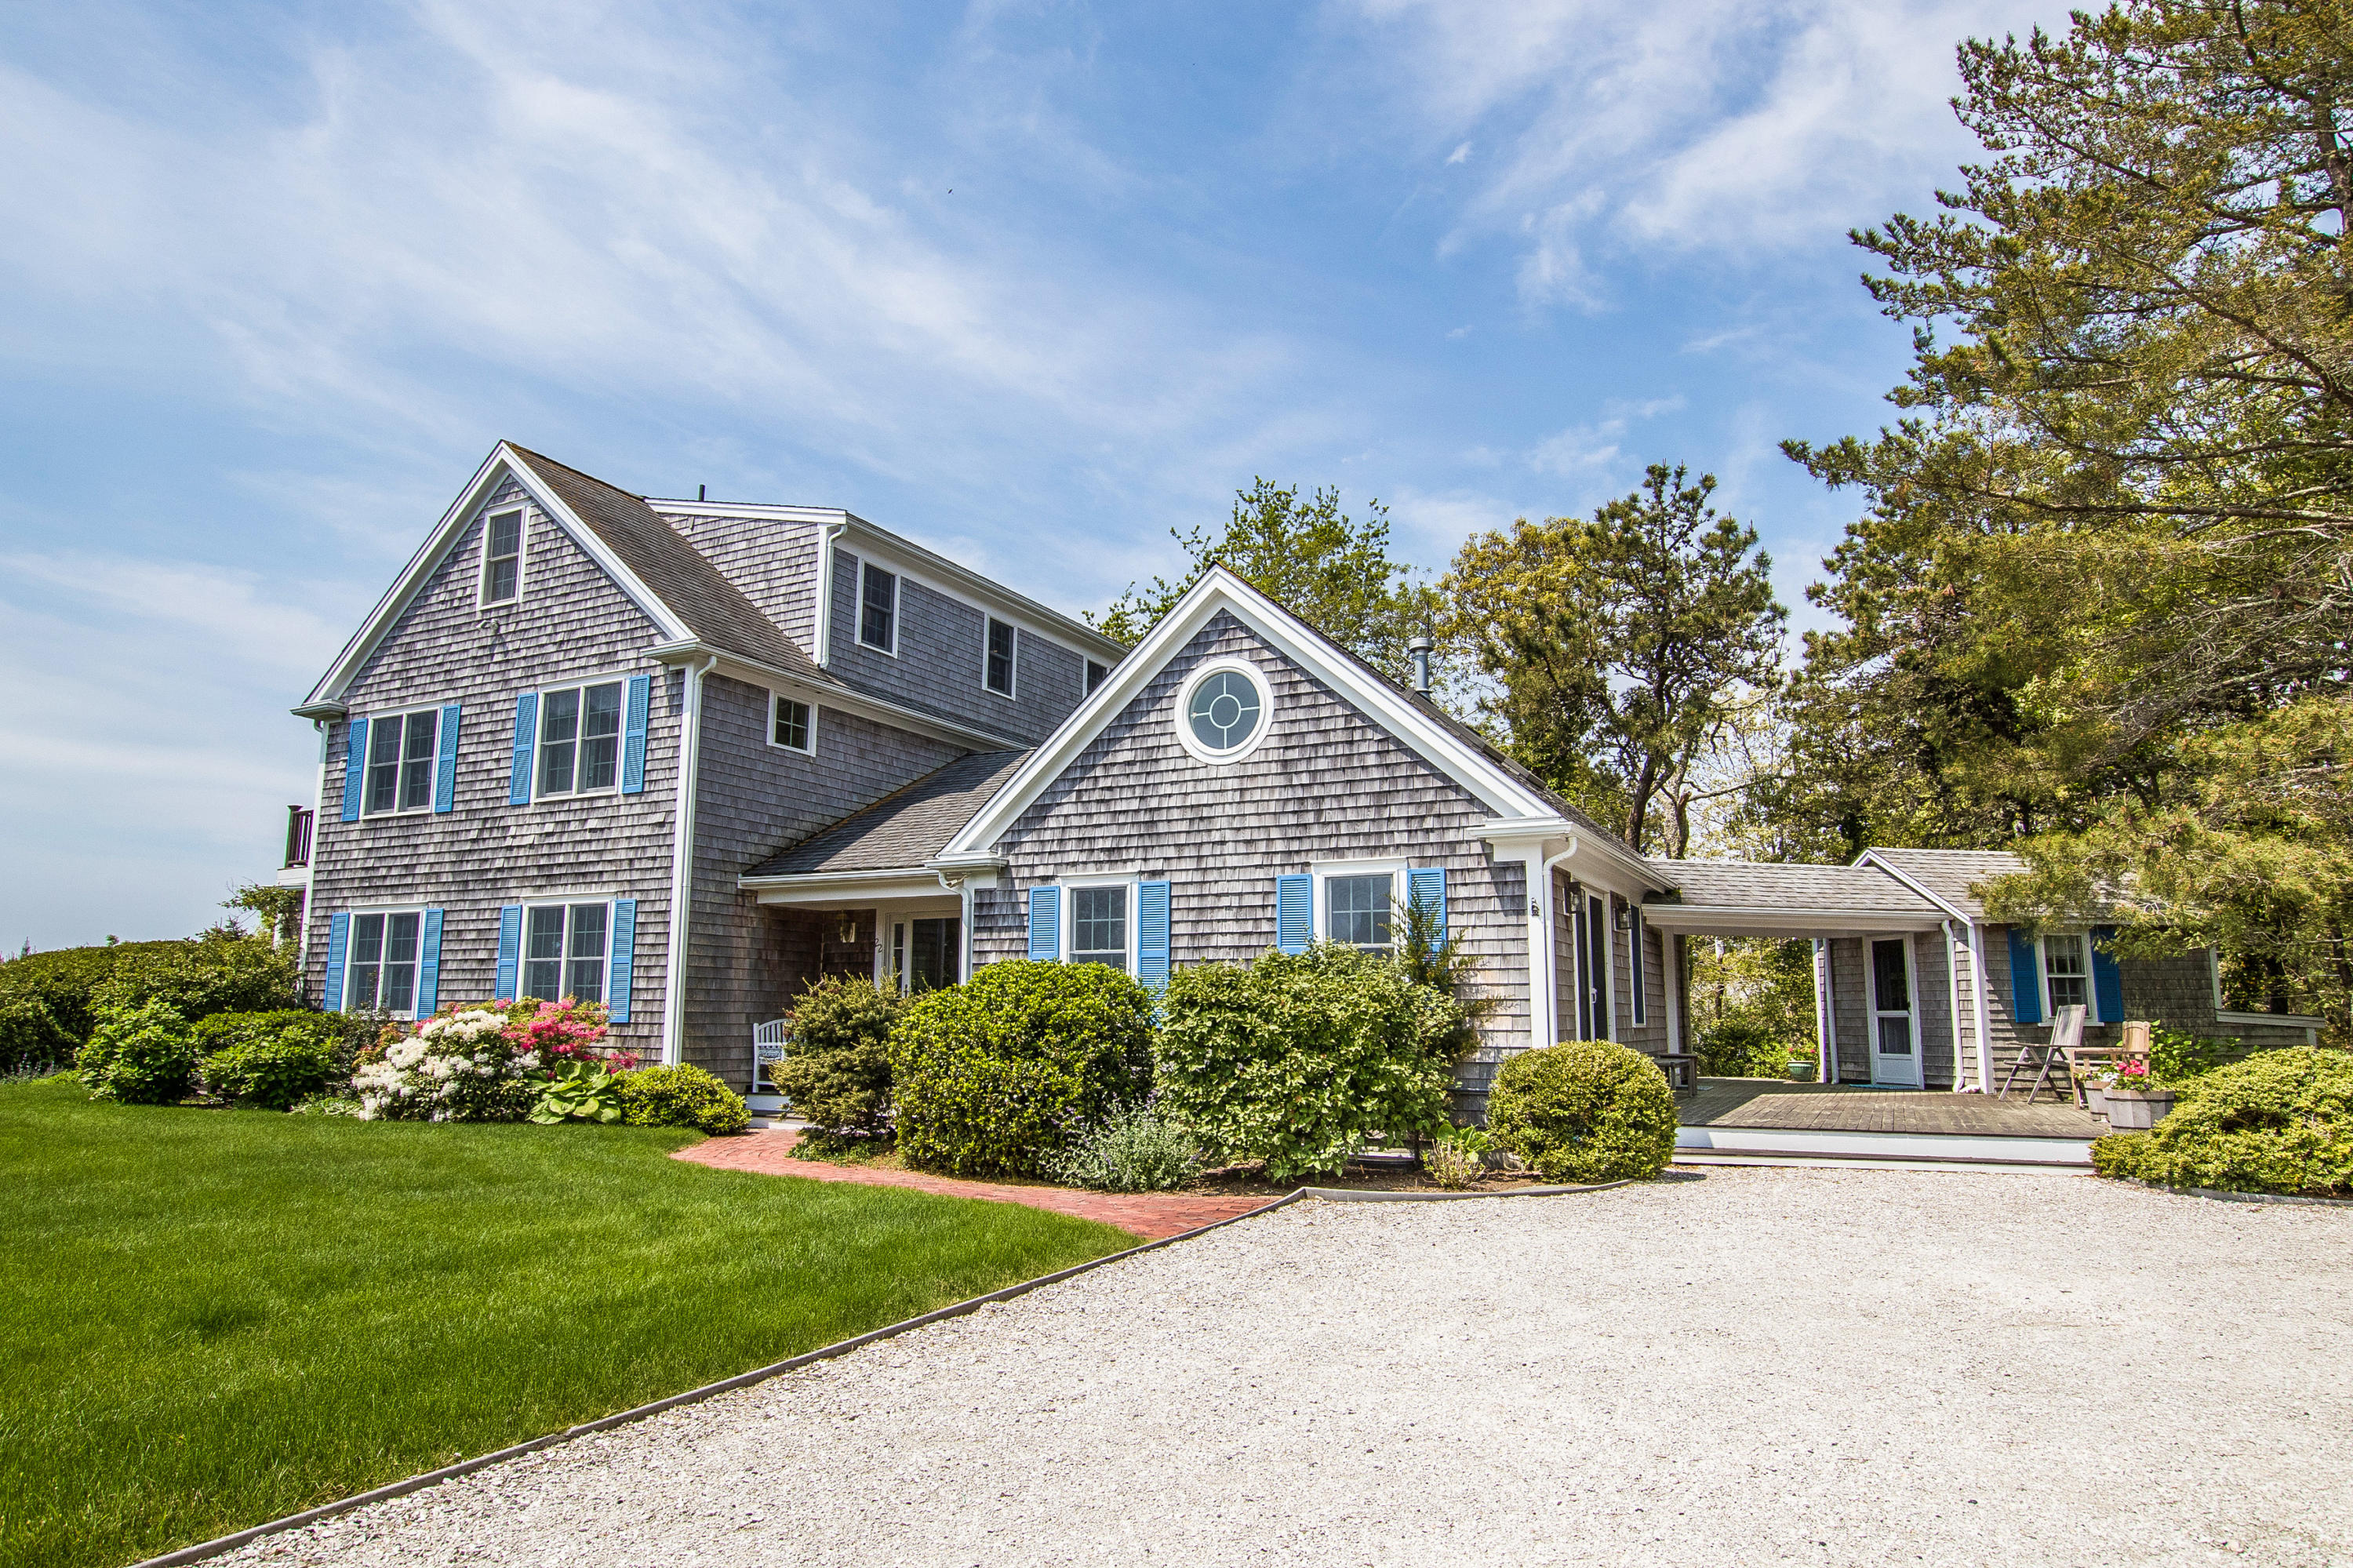 Chatham Real Estate - Cape Cod , 22 Hilltop Lane, West Chatham MA, 02633   Listed at $1,849,000